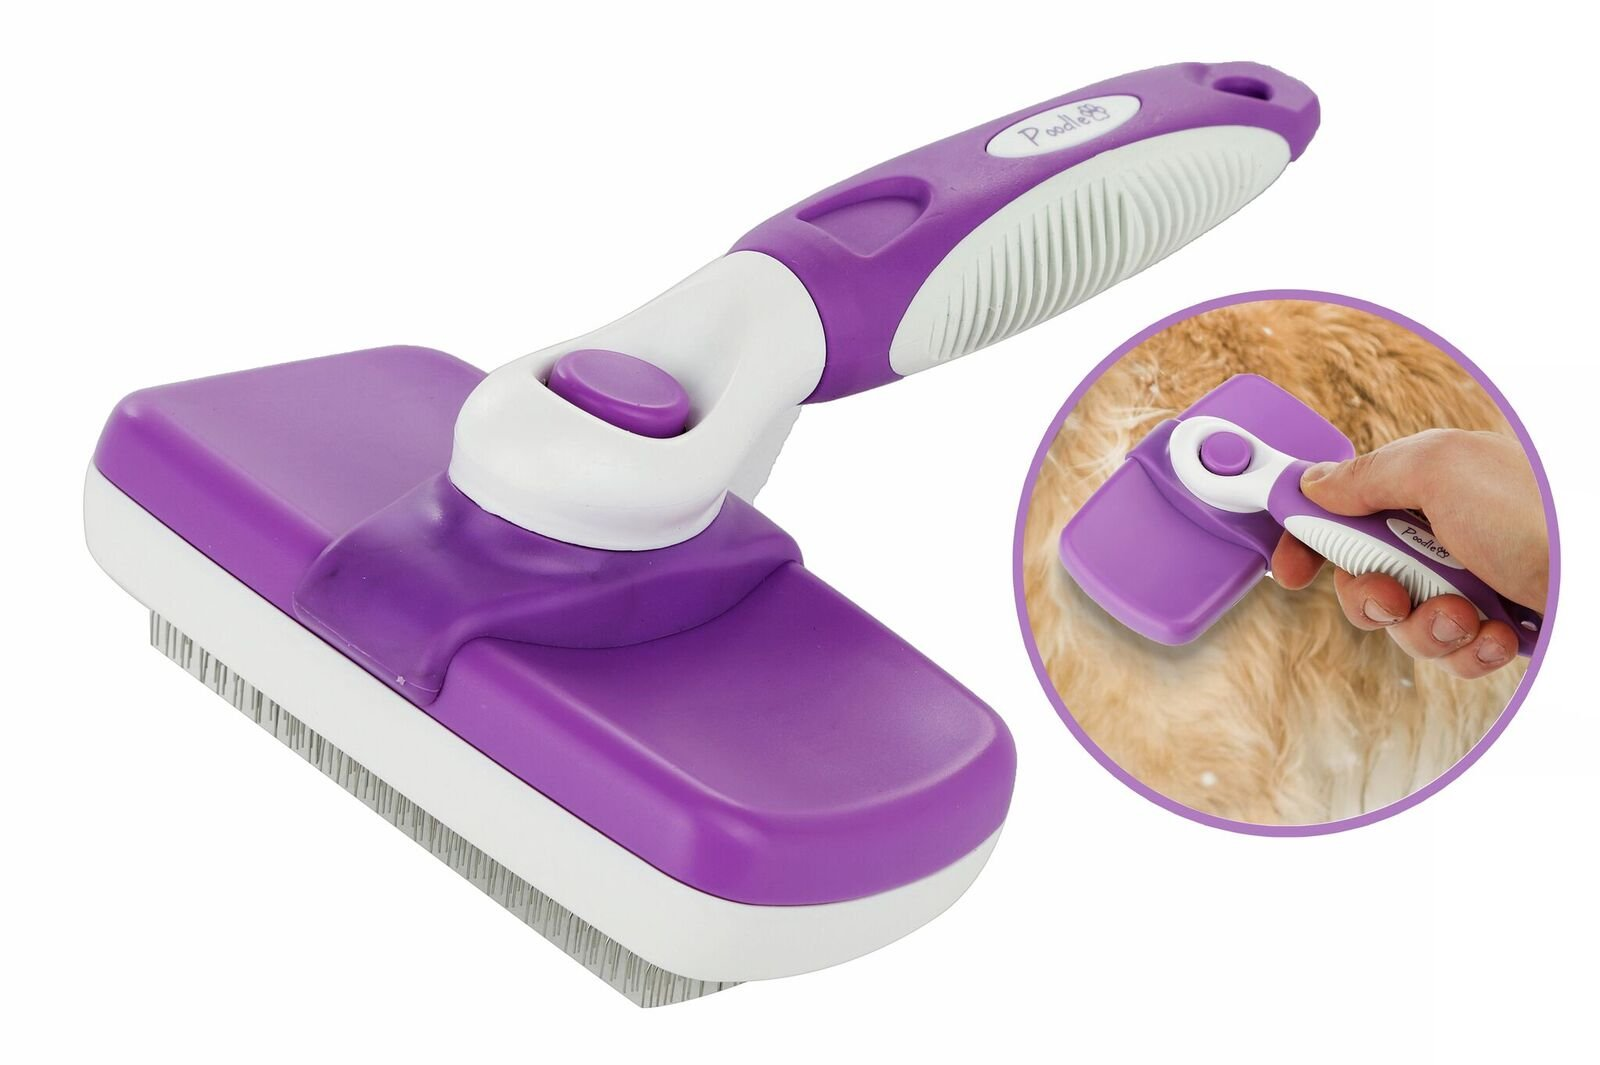 Poodle Pet Self Cleaning Slicker Brush for Dogs, Cats, Rabbits & Horses, 6.5″ x 5″ Retractable, Easy Clean, Ergonomic Stainless Steel Metal Bristle Slicking Comb Professional Grooming Tool